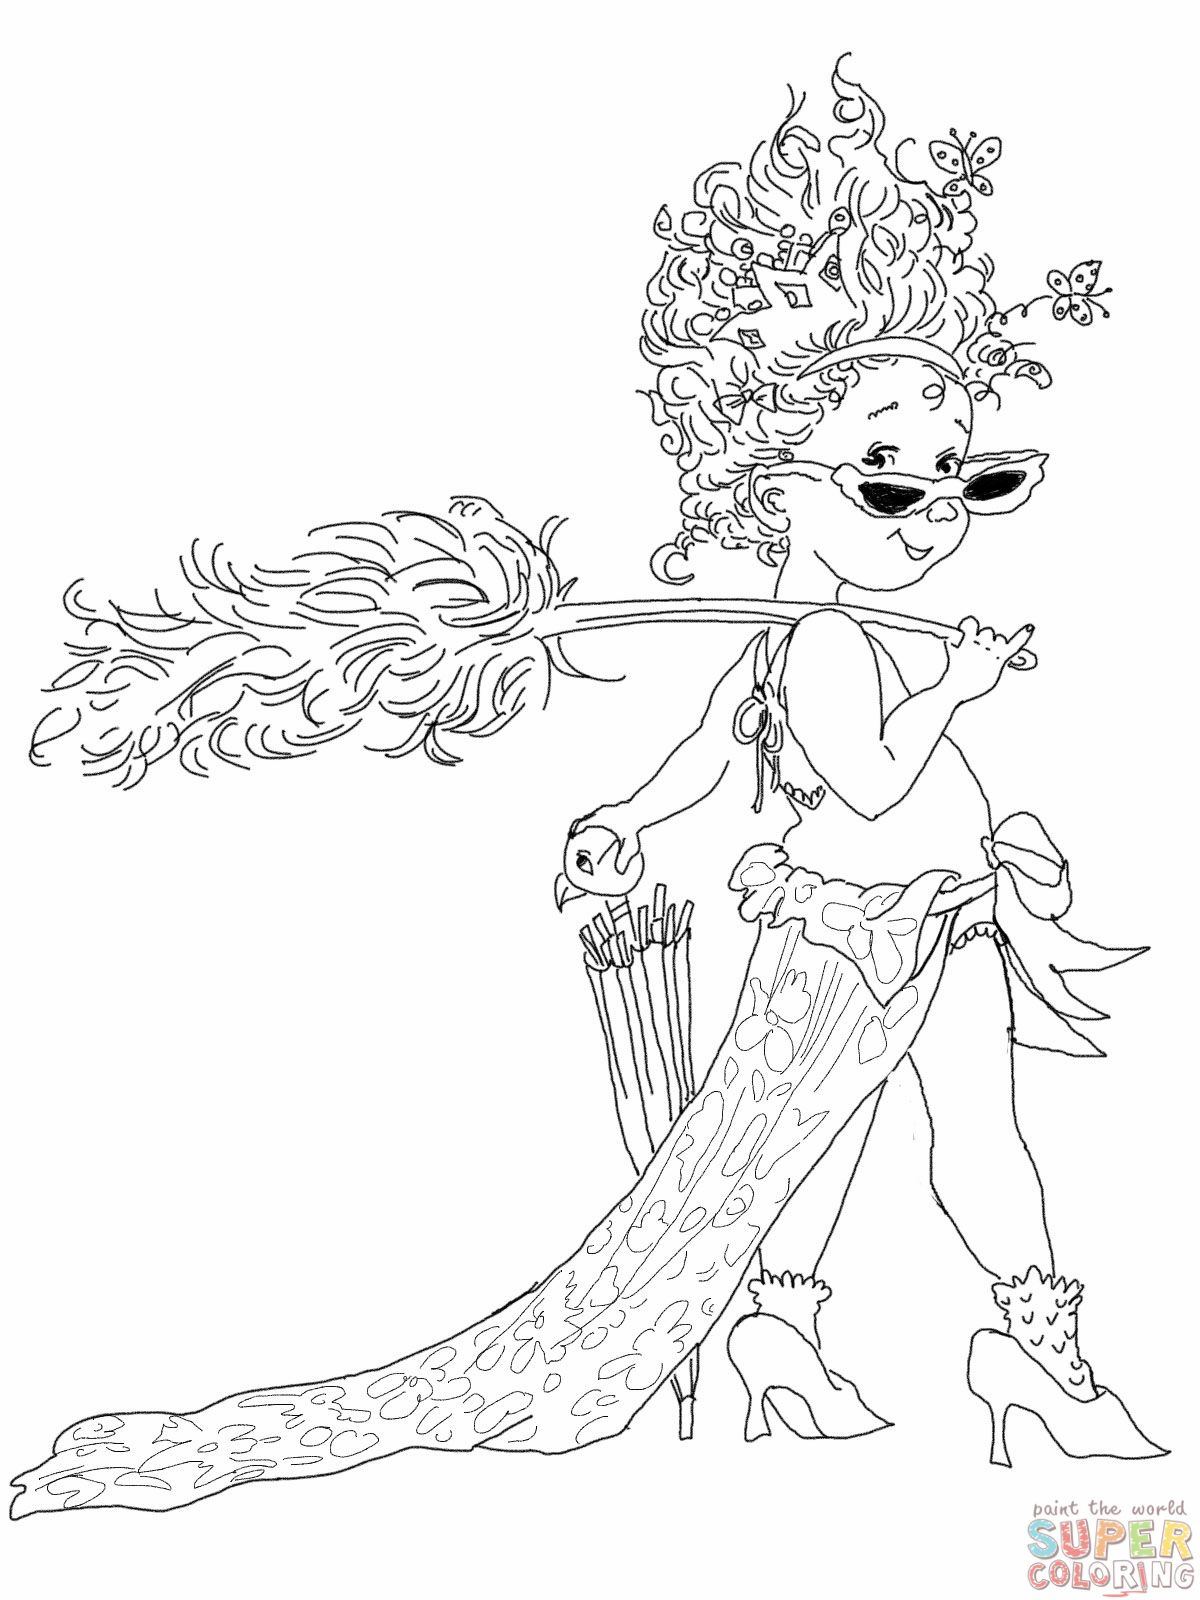 Fancy Nancy With Umbrella Coloring Online Super Coloring Umbrella Coloring Page Coloring Pages Fancy Nancy